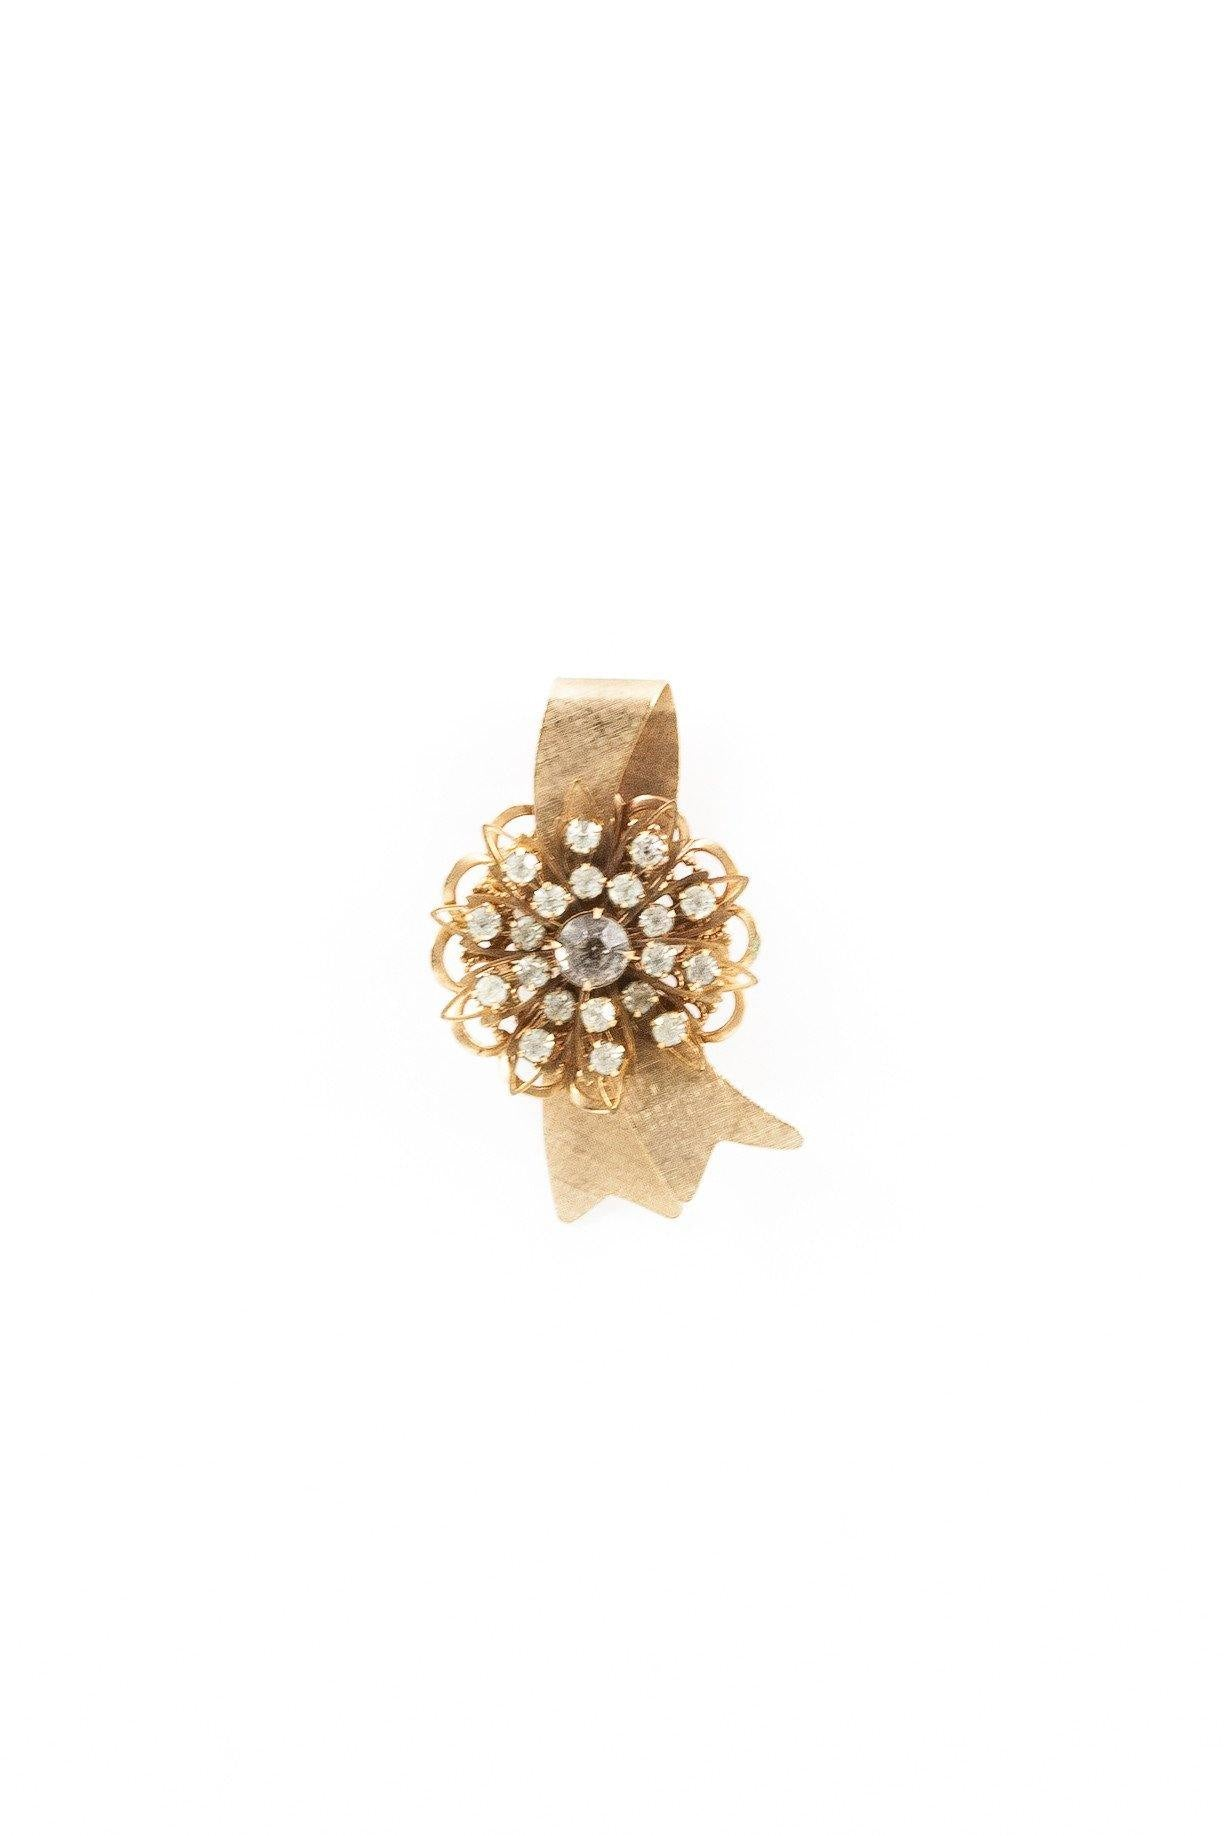 40's__Accessocraft__Rhinestone Flower Pin